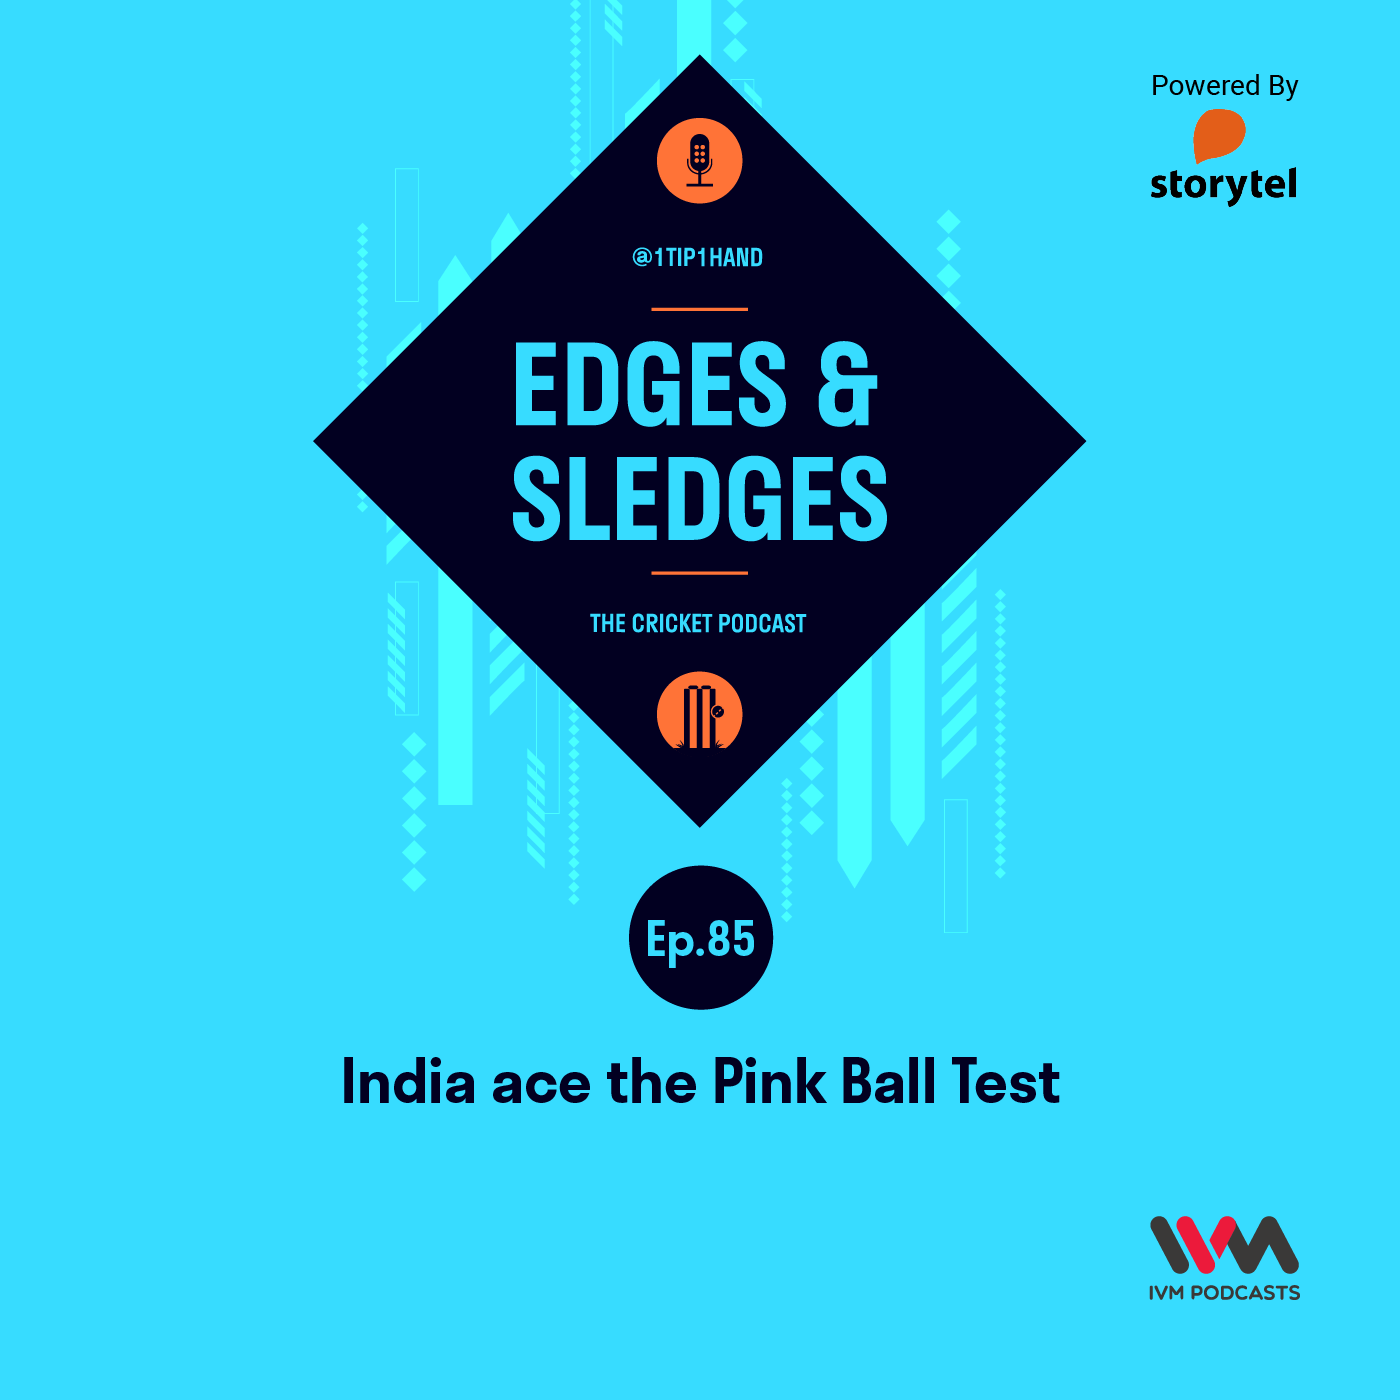 Ep. 85: India ace the Pink Ball Test